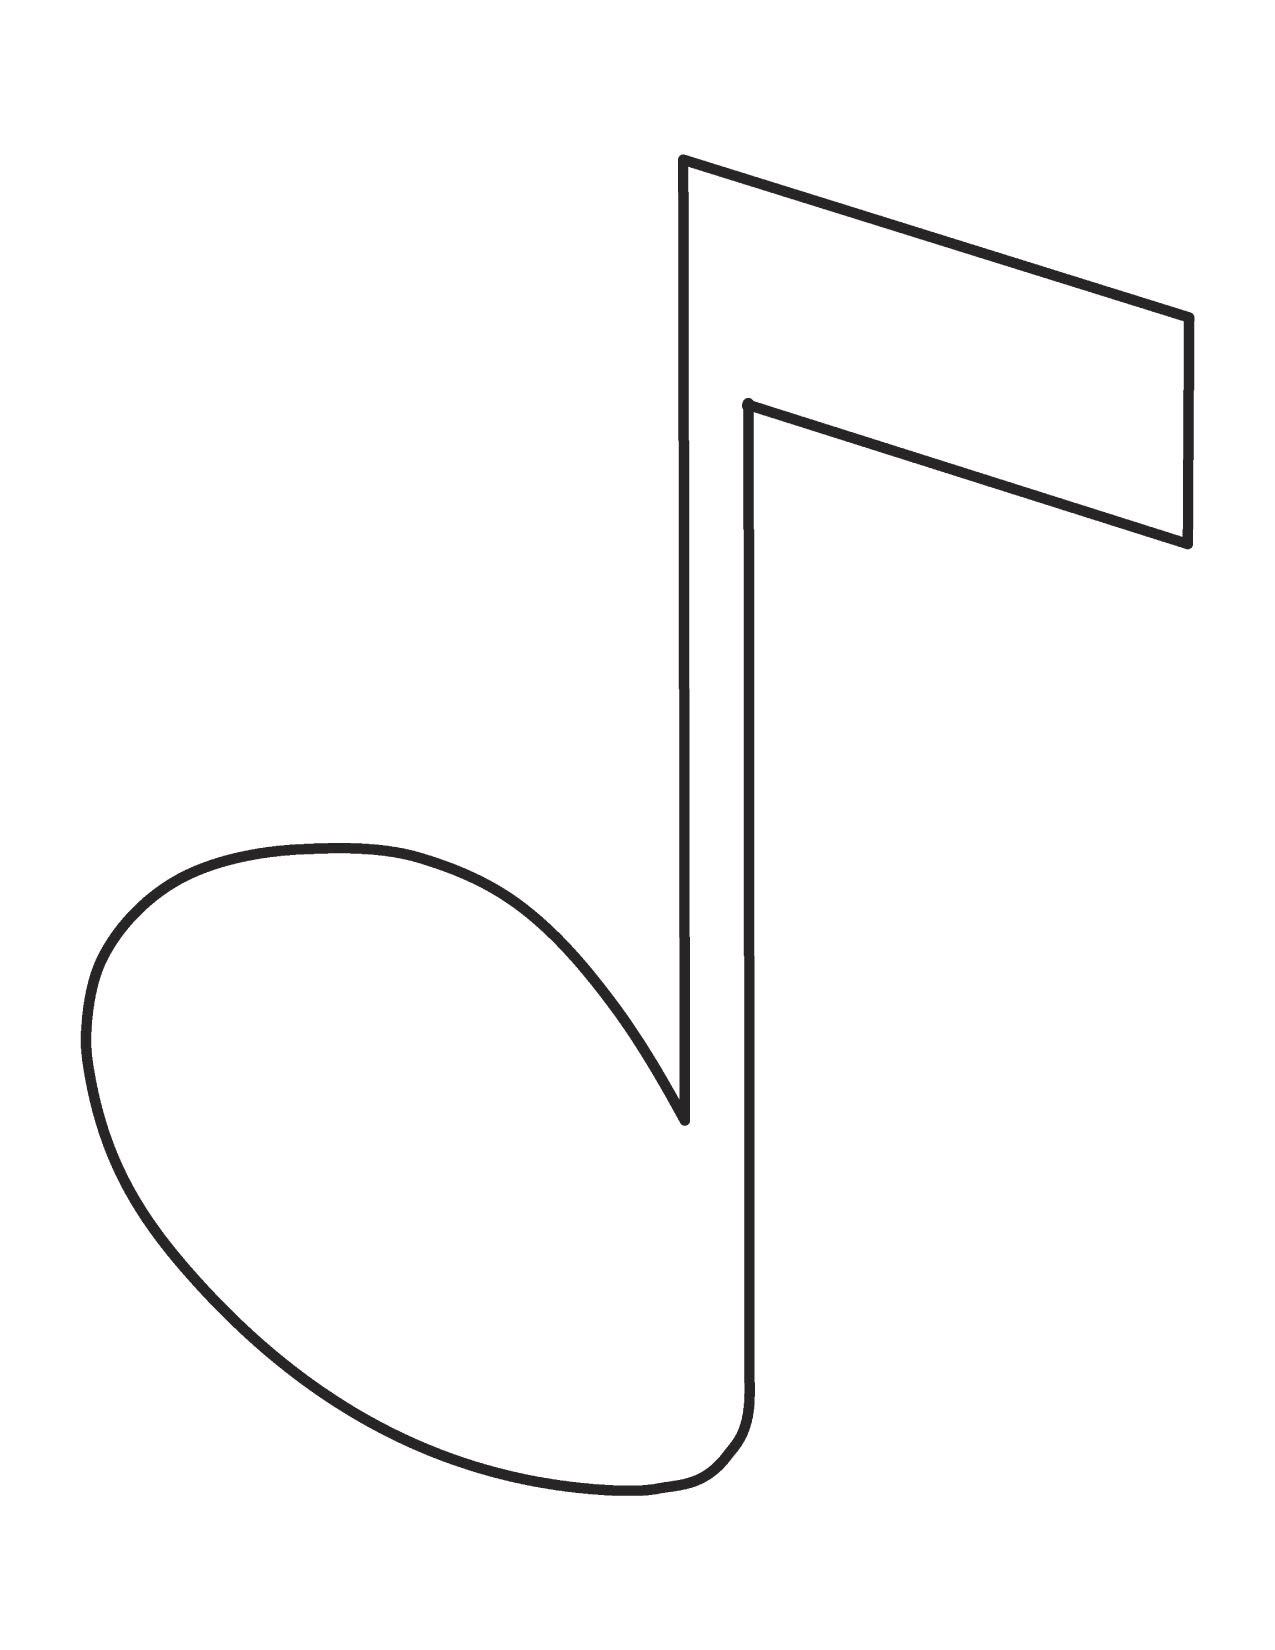 Free printable music note coloring pages for kids music note coloring page biocorpaavc Image collections